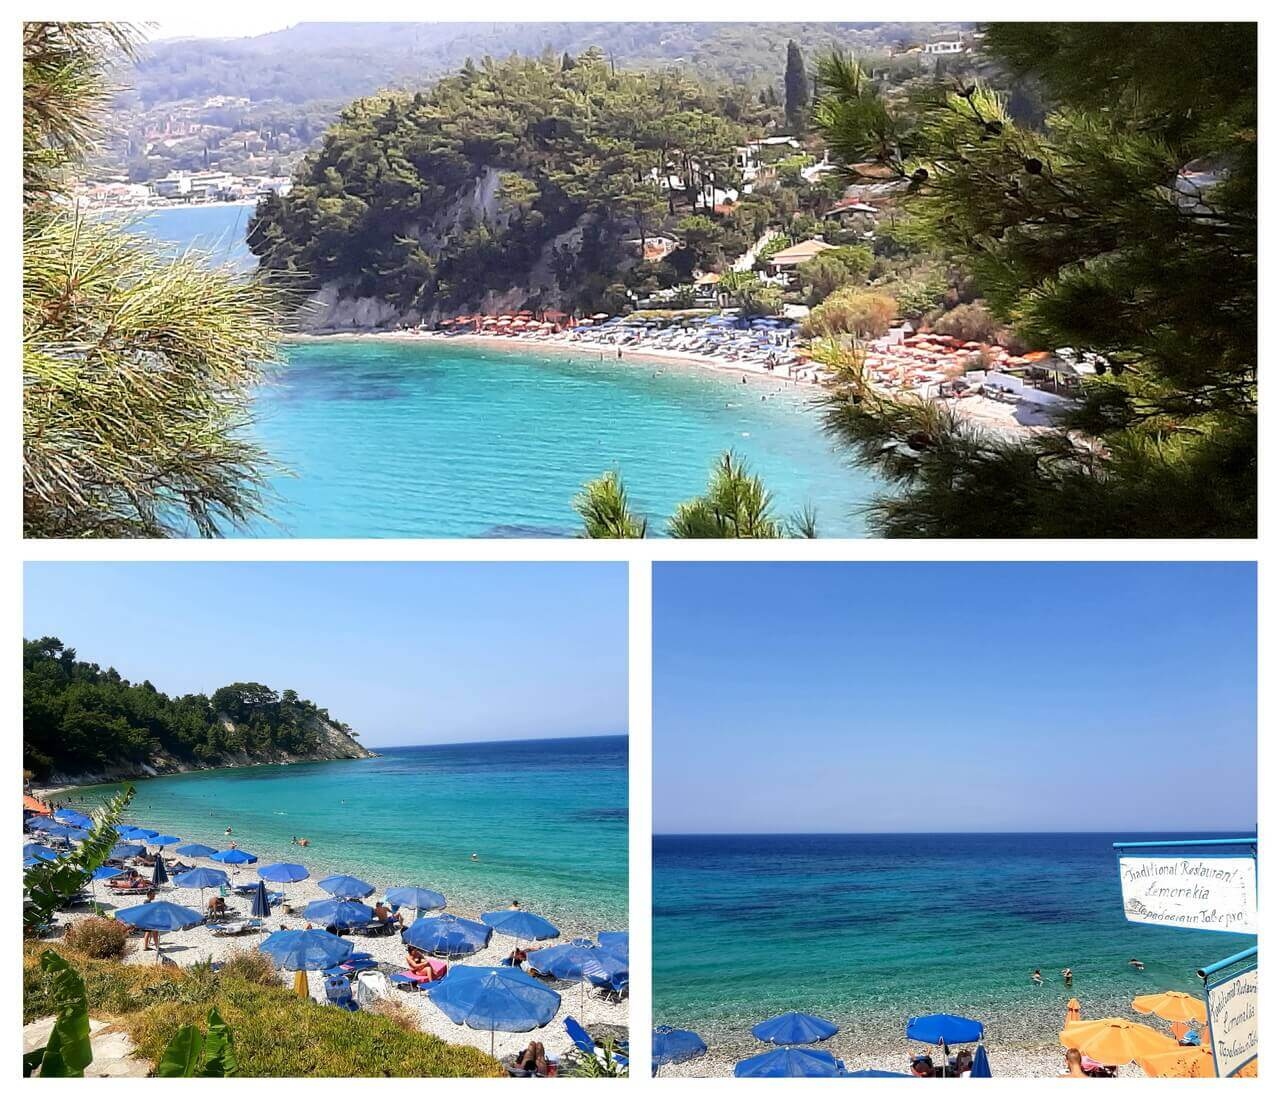 Lemonakia beach,